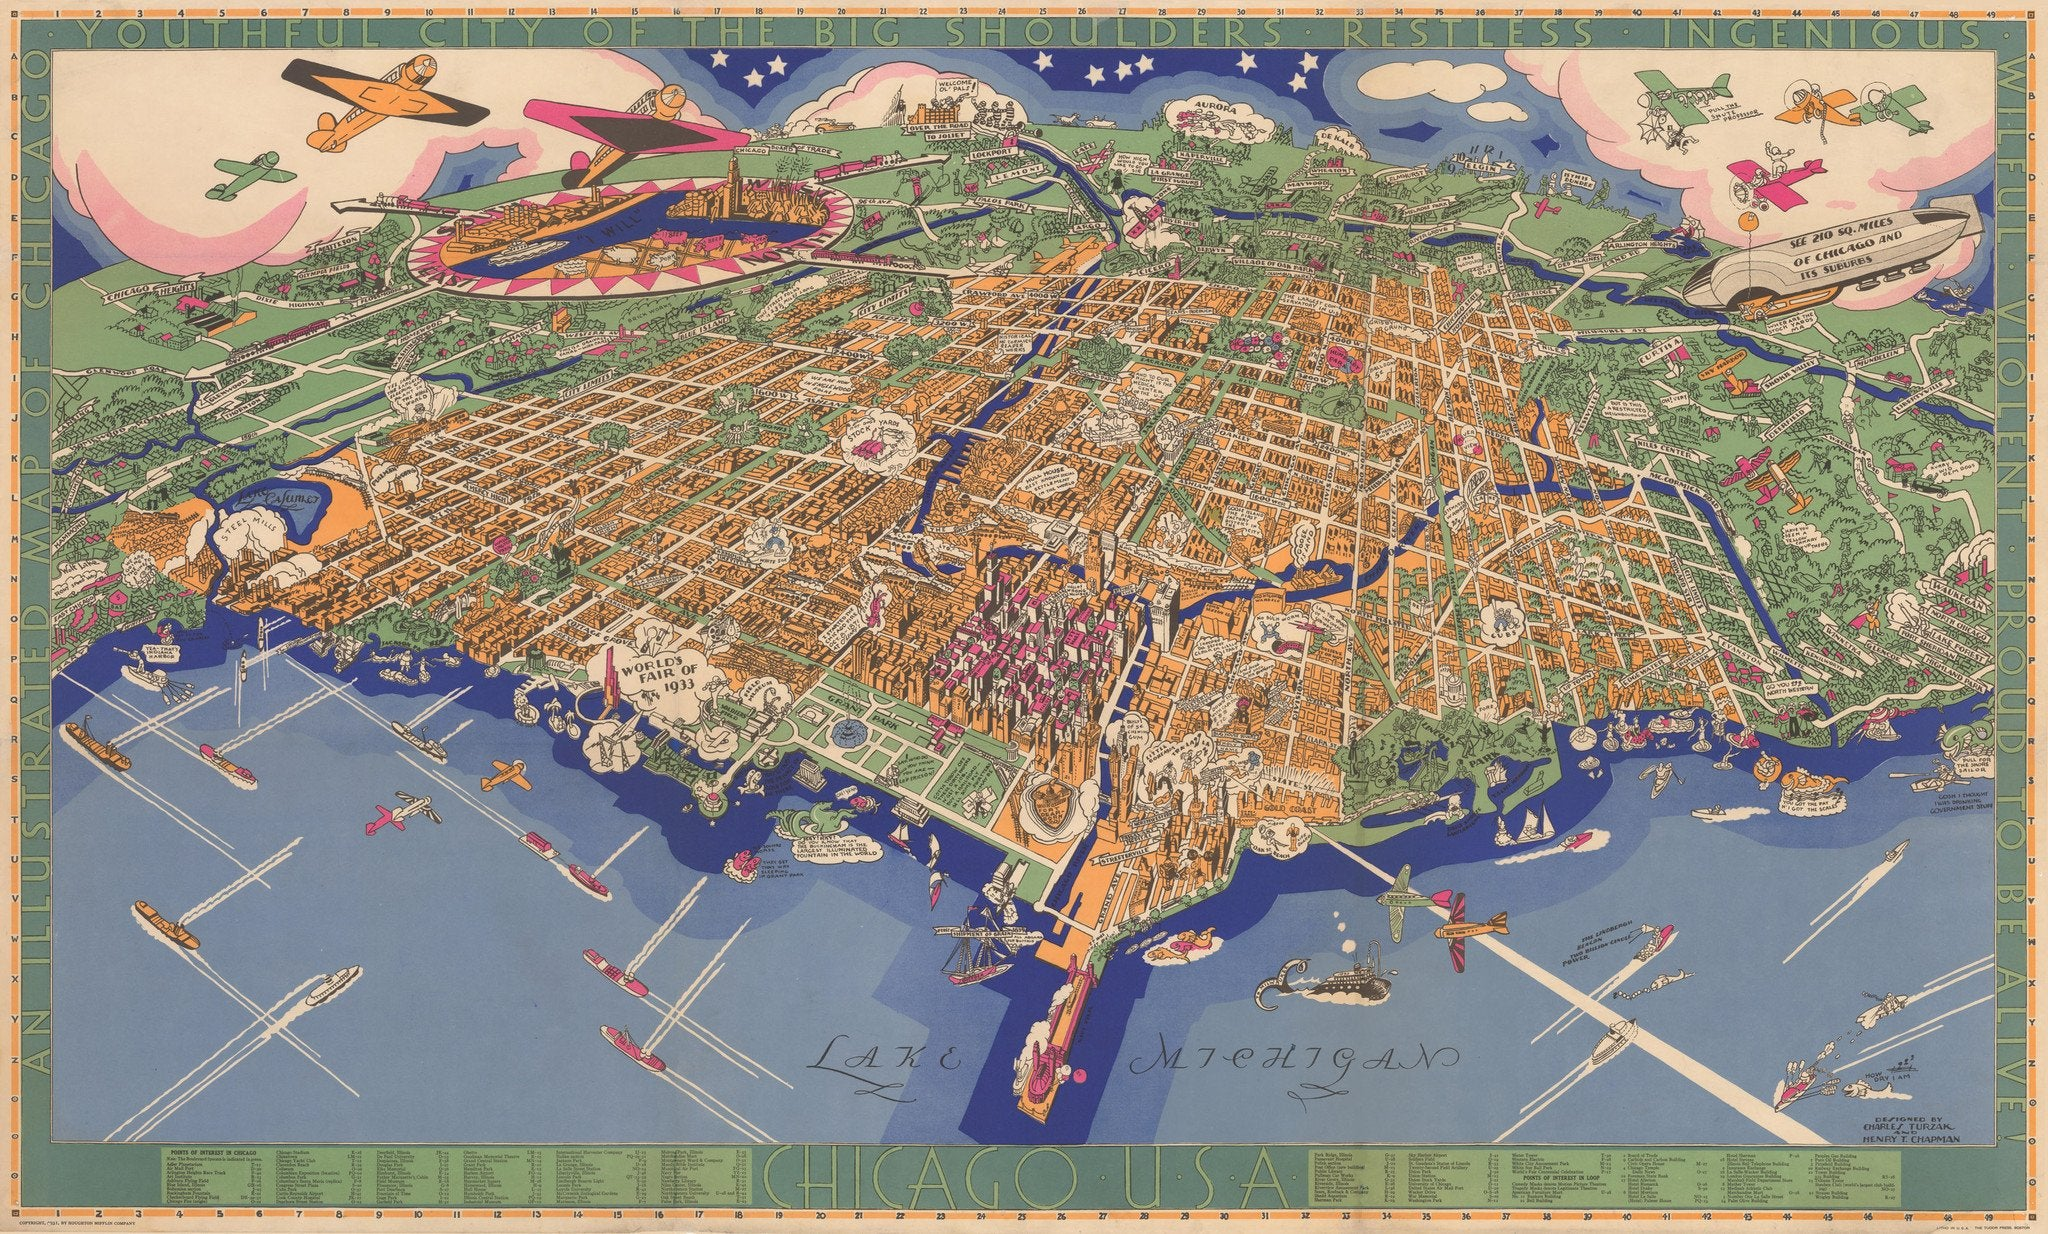 chicago aerial 1930s map